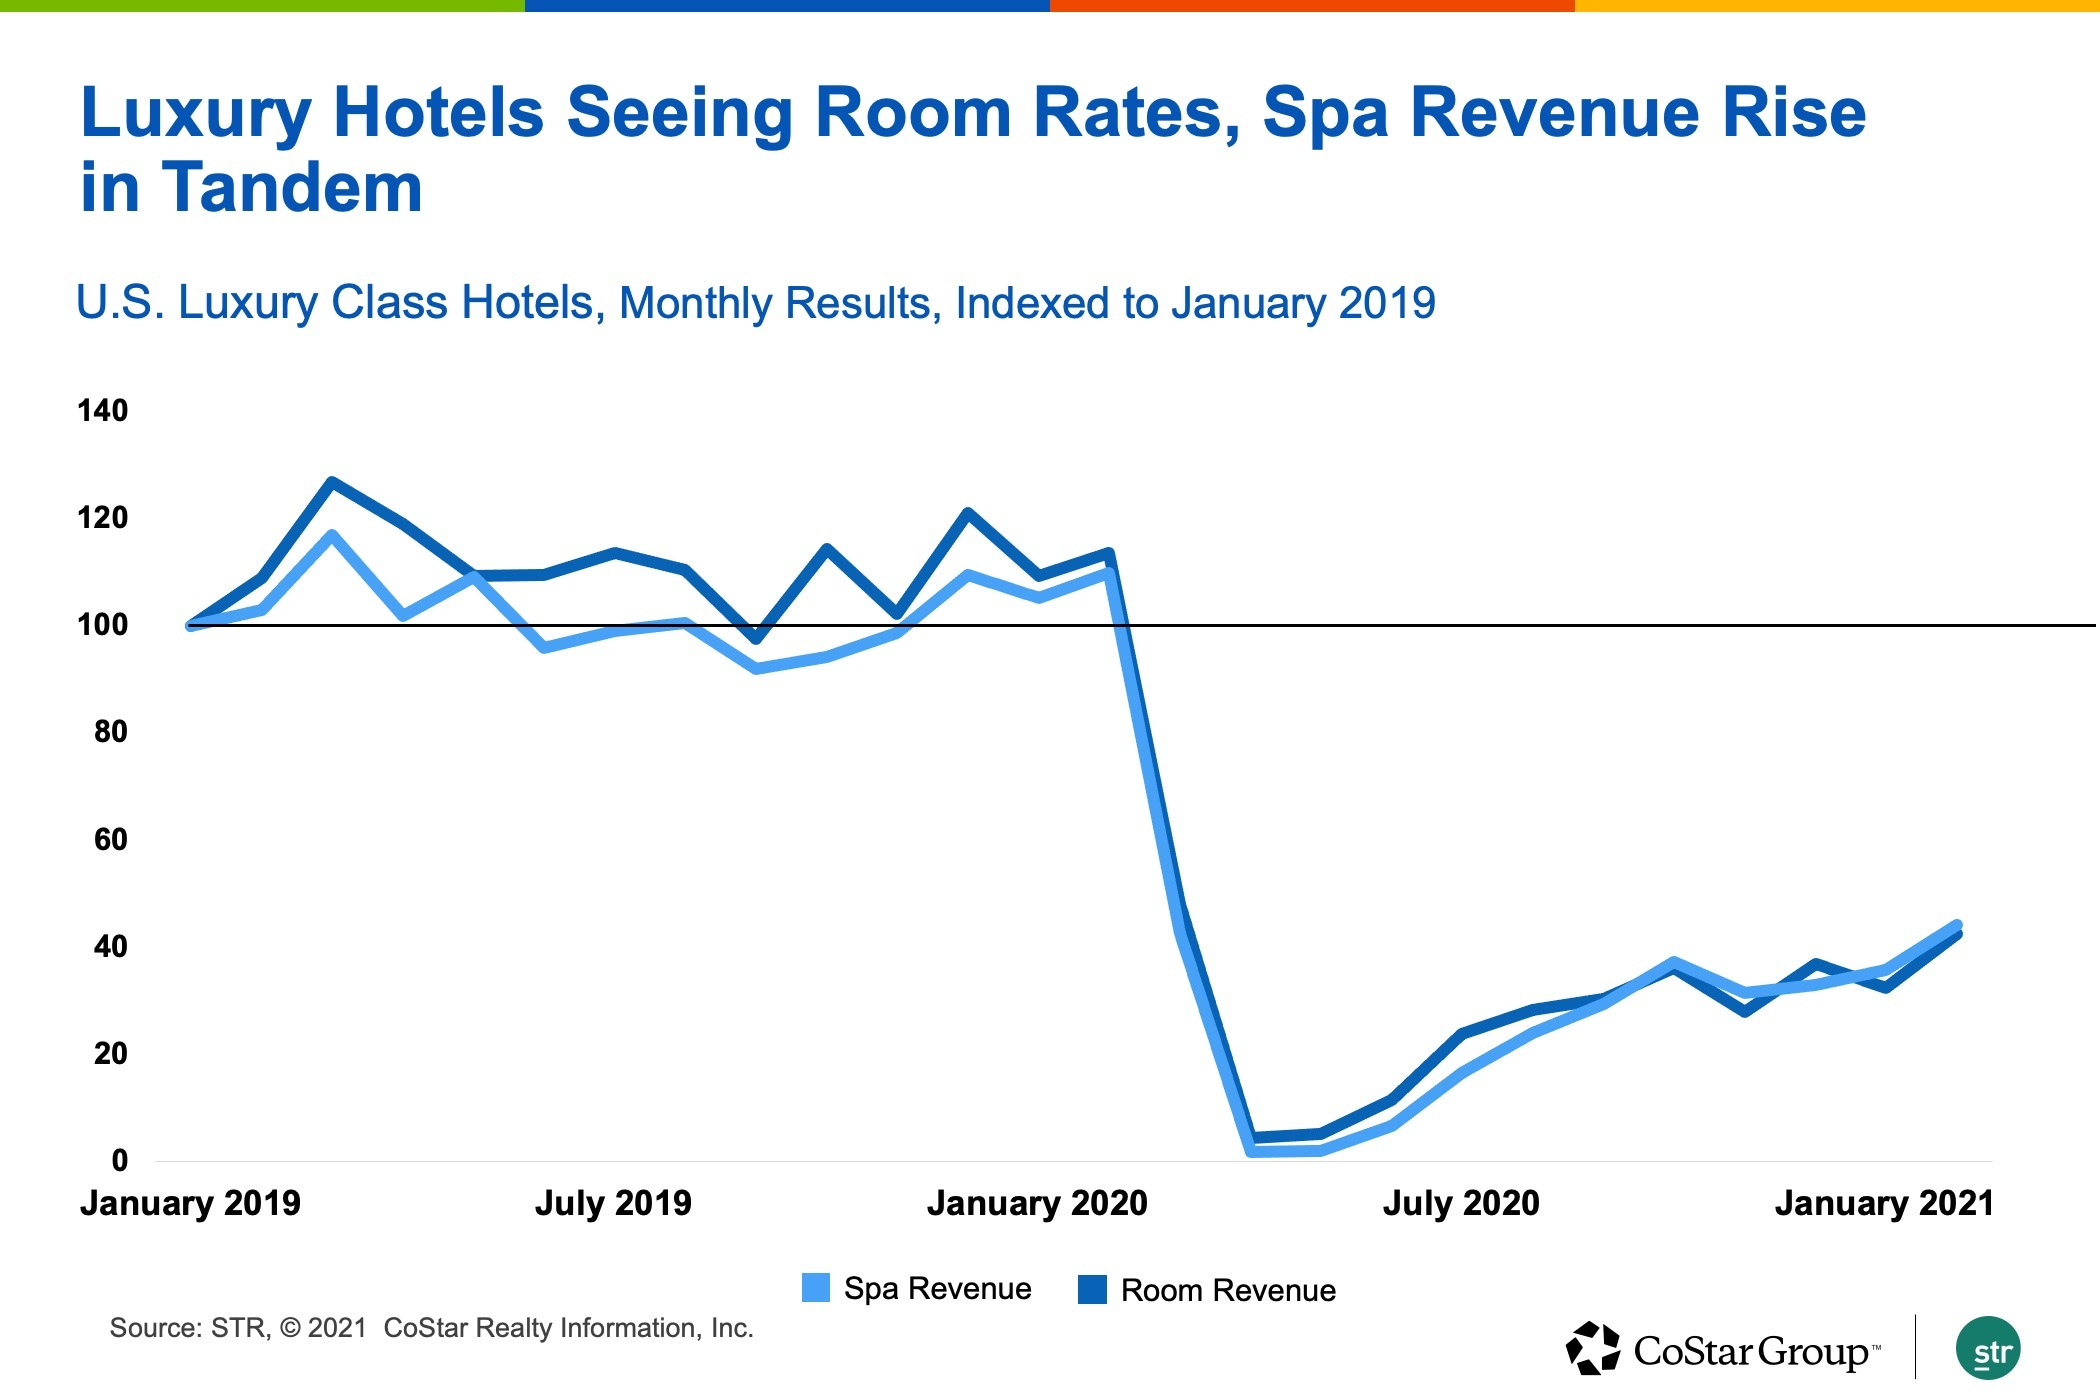 ?url=http%3A%2F%2Fcostar brightspot.s3.amazonaws.com%2F6e%2Faa%2F47d2f3204e06bad5039211d37678%2Fslide1 - Recent Performance of Luxury Hotel Spas Points to Ongoing Recovery